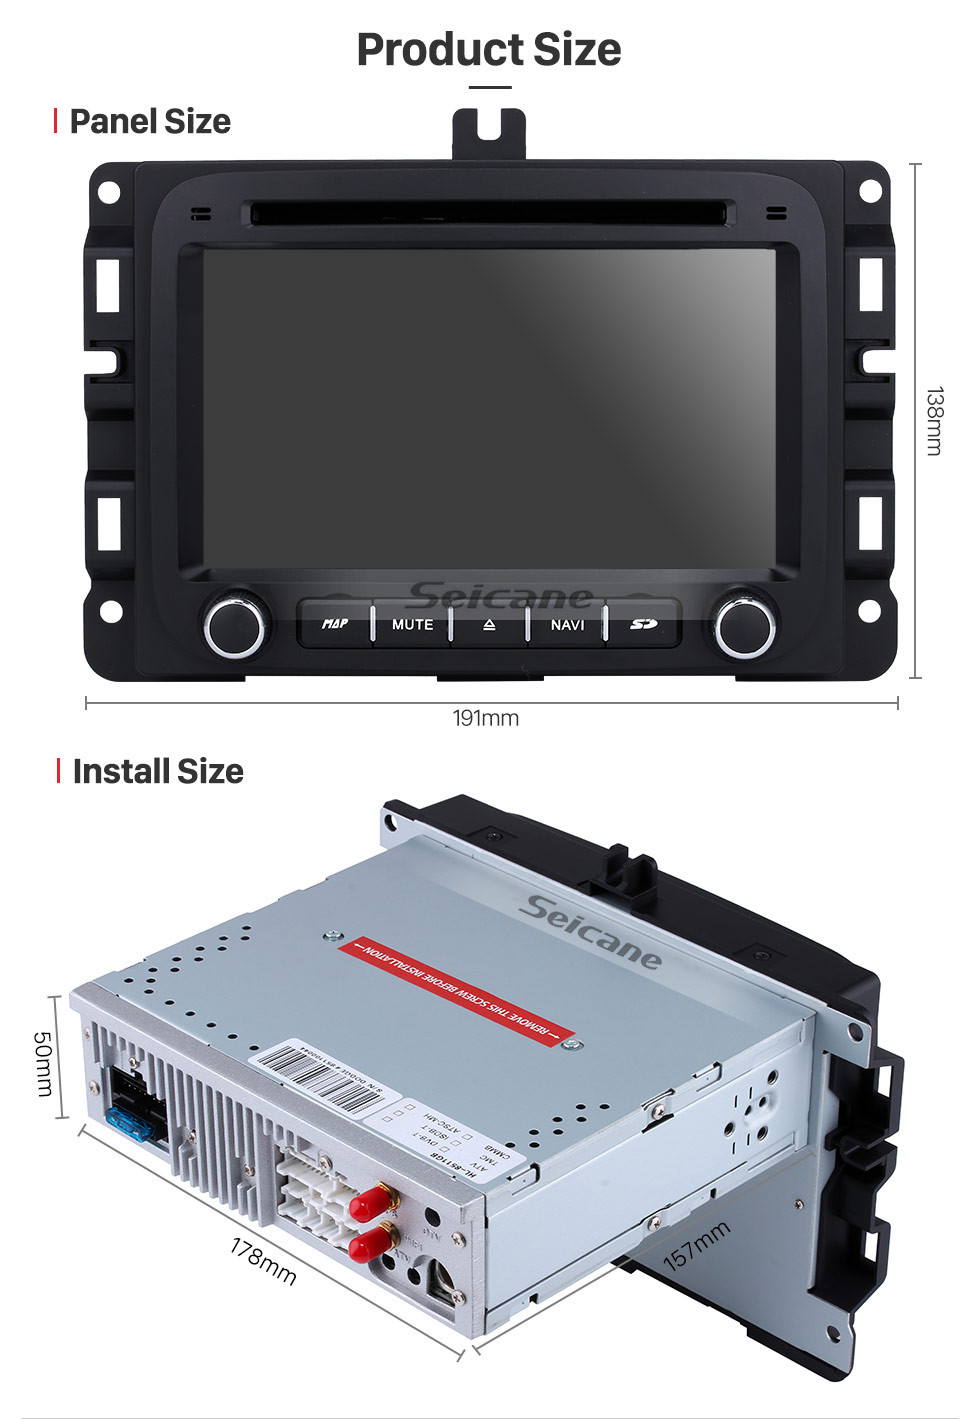 Seicane Android 9.0 7 inch HD Touch Screen DVD Player for 2013-2015 Dodge Ram 1500 2500 3500 4500 Radio GPS Navigation Bluetooth WIFI Support TV Backup Camera steering wheel control USB SD 1080P Video